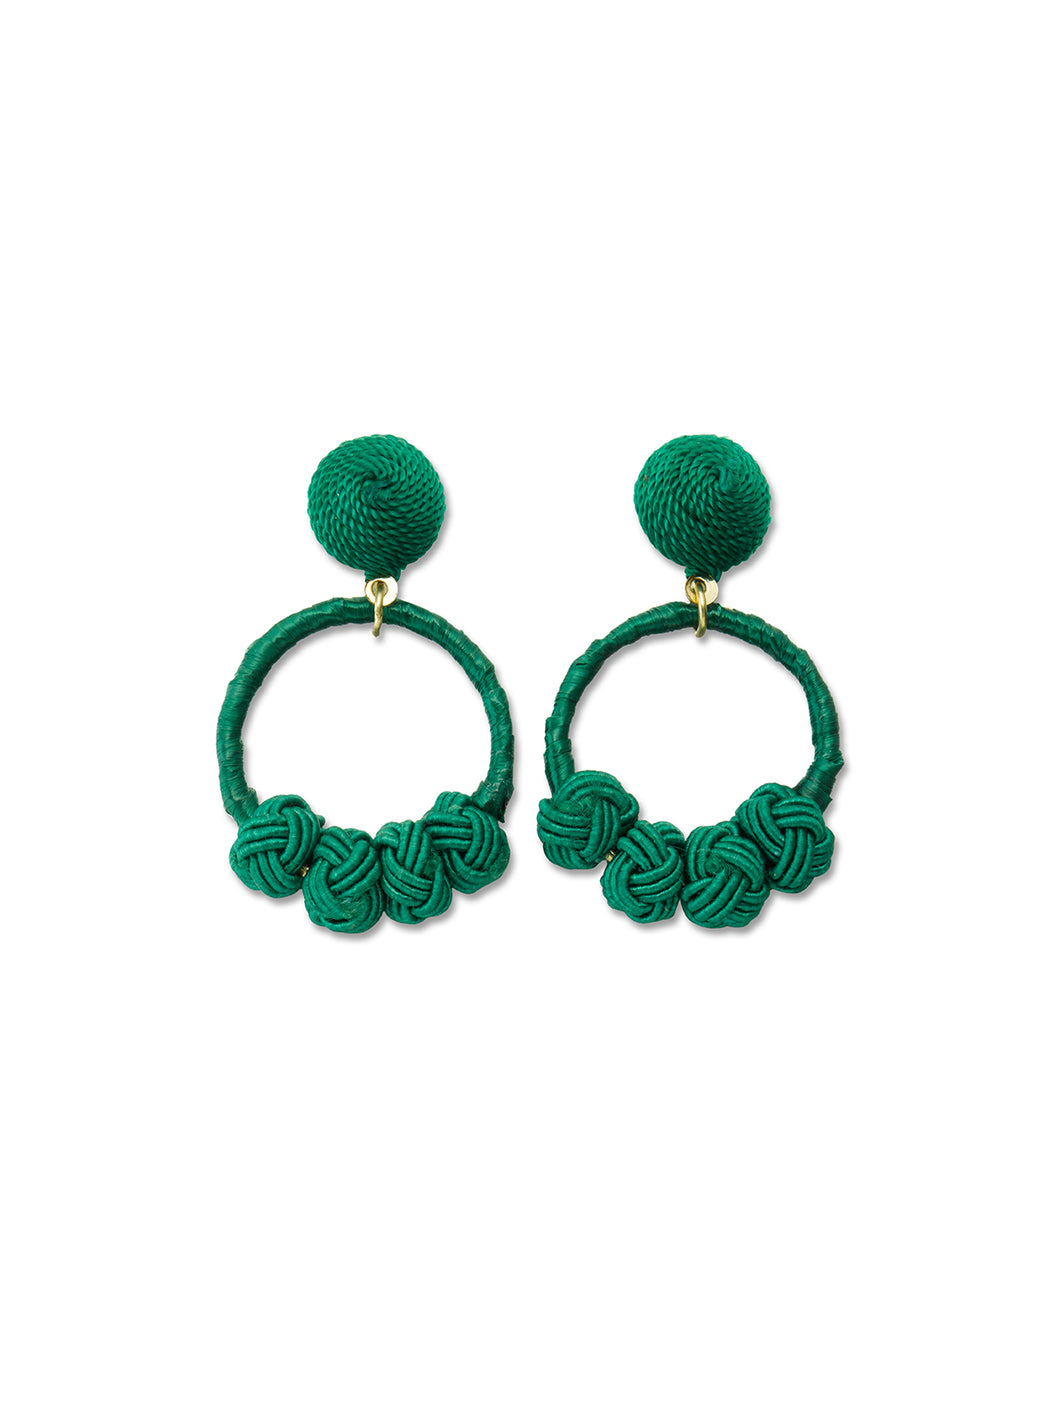 Emerald Woven Knot Loop Earrings